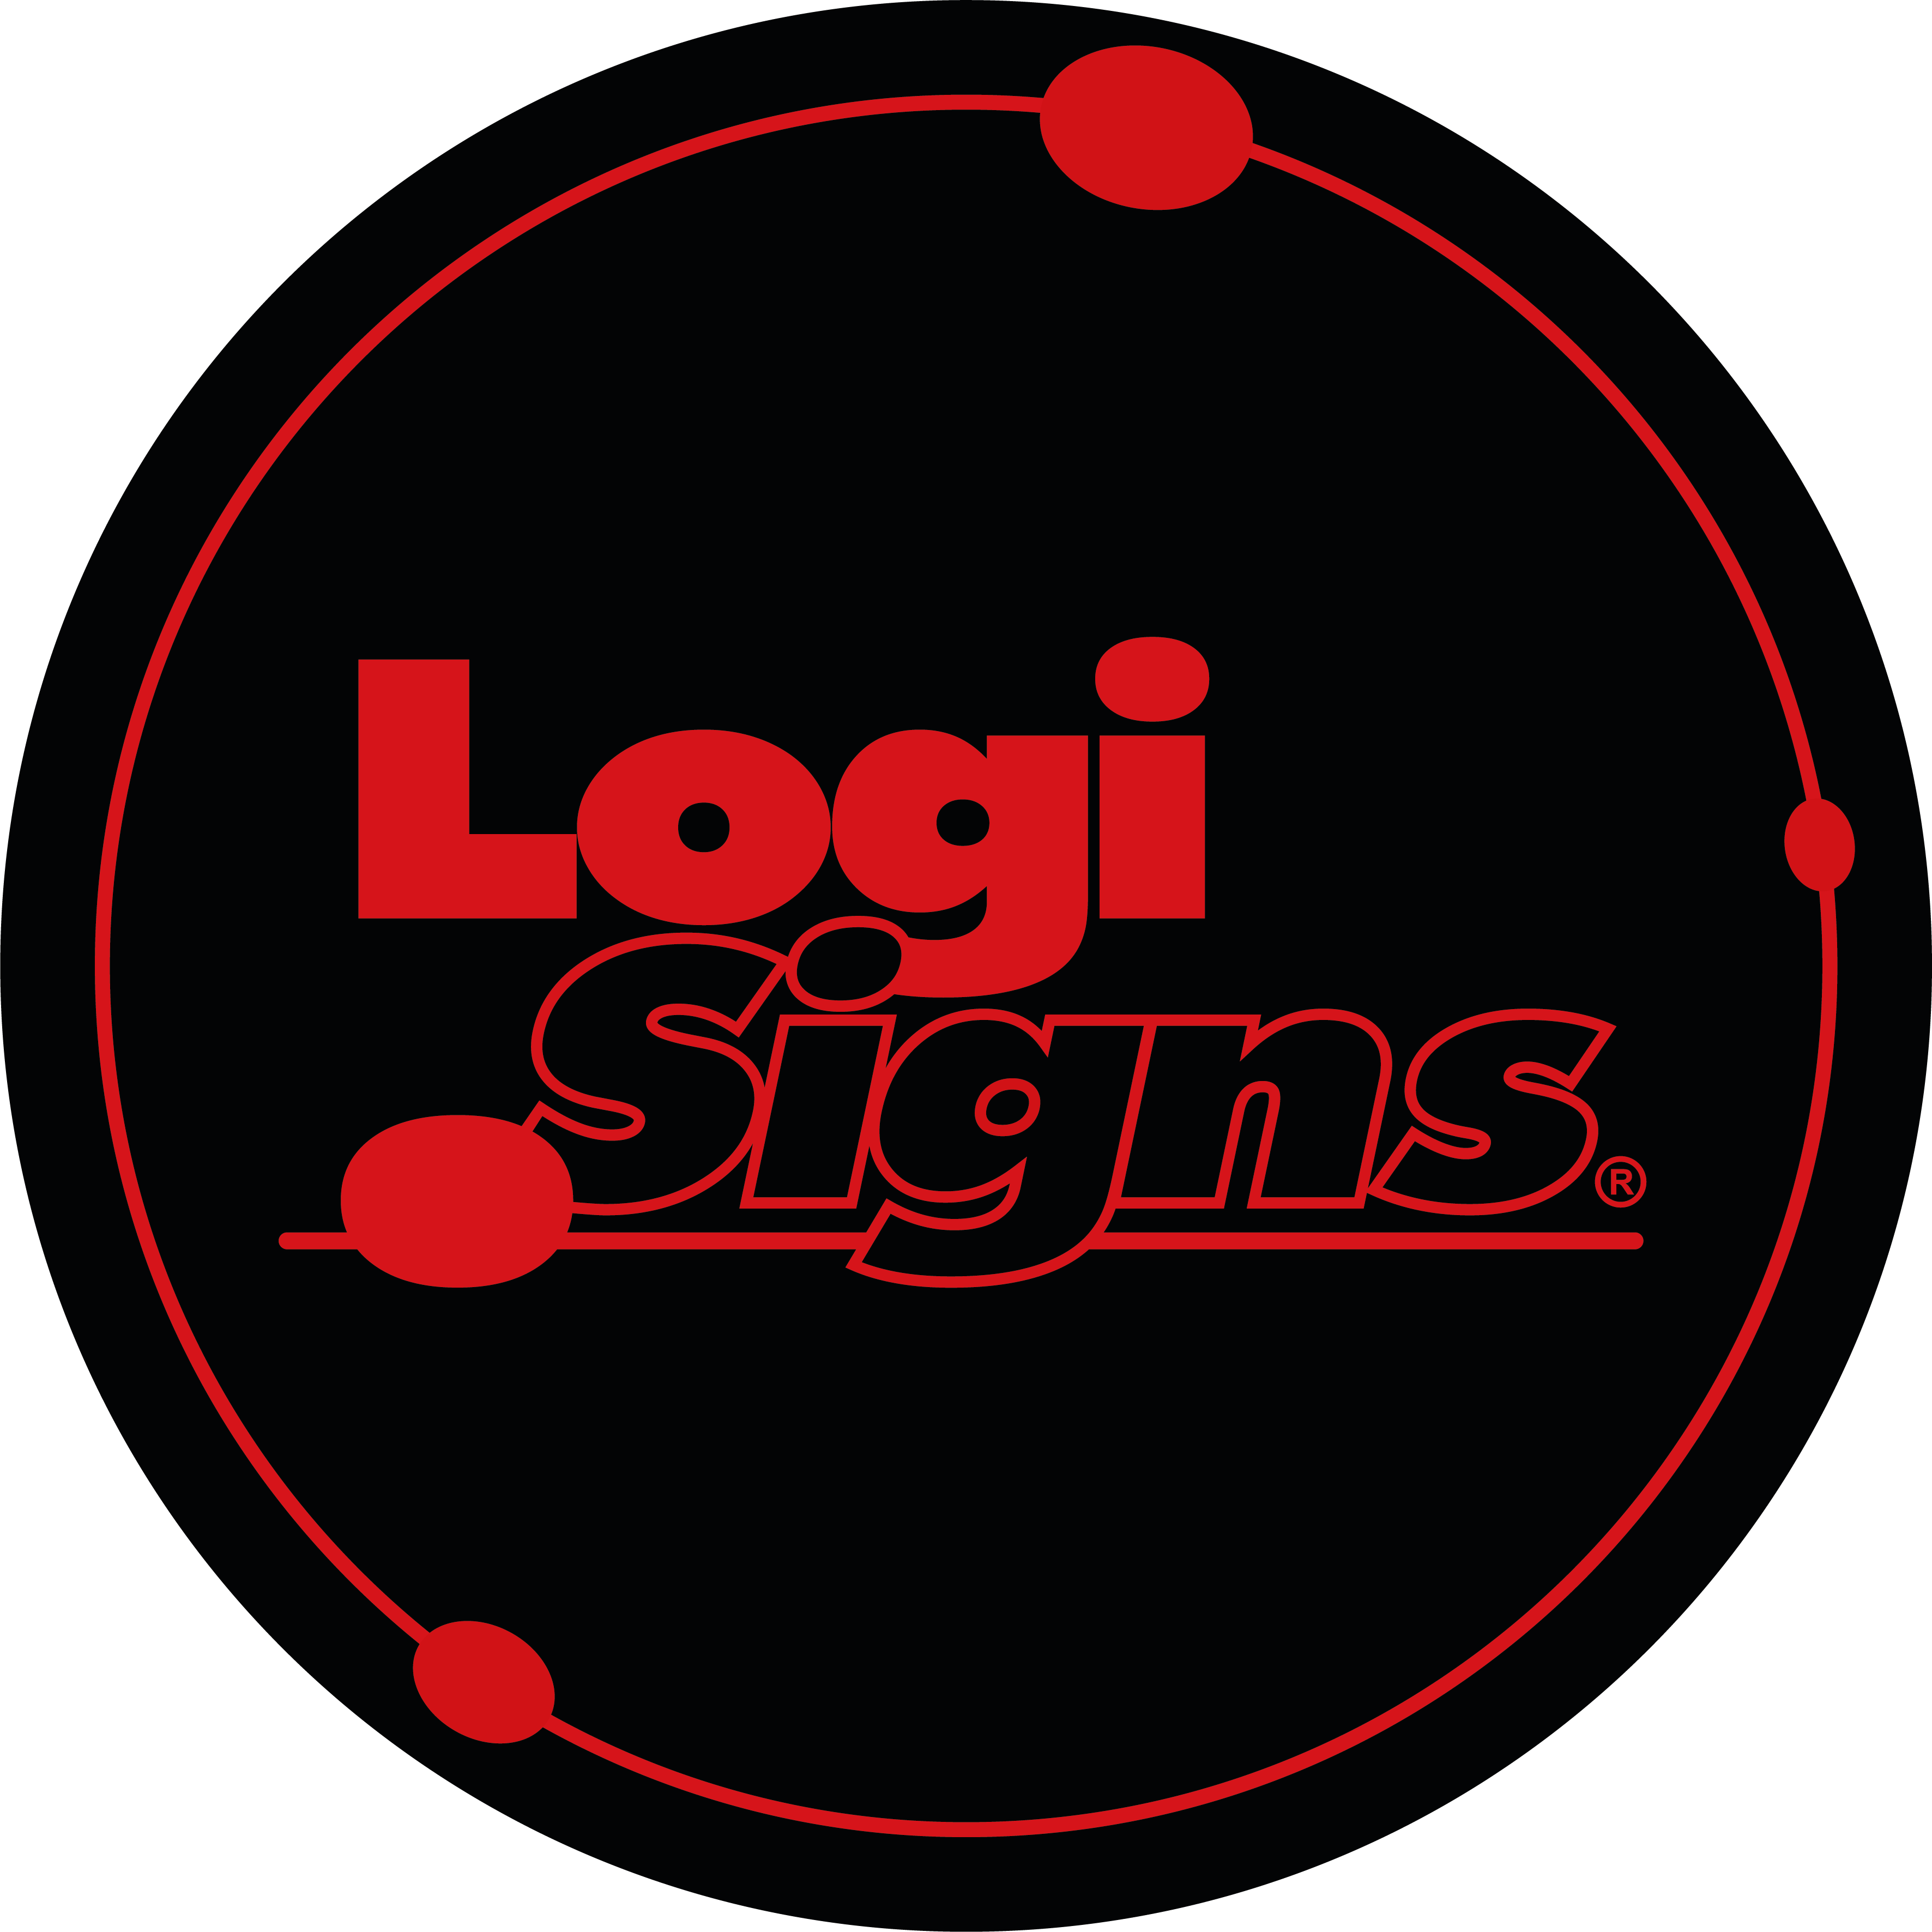 LOGISIGNS